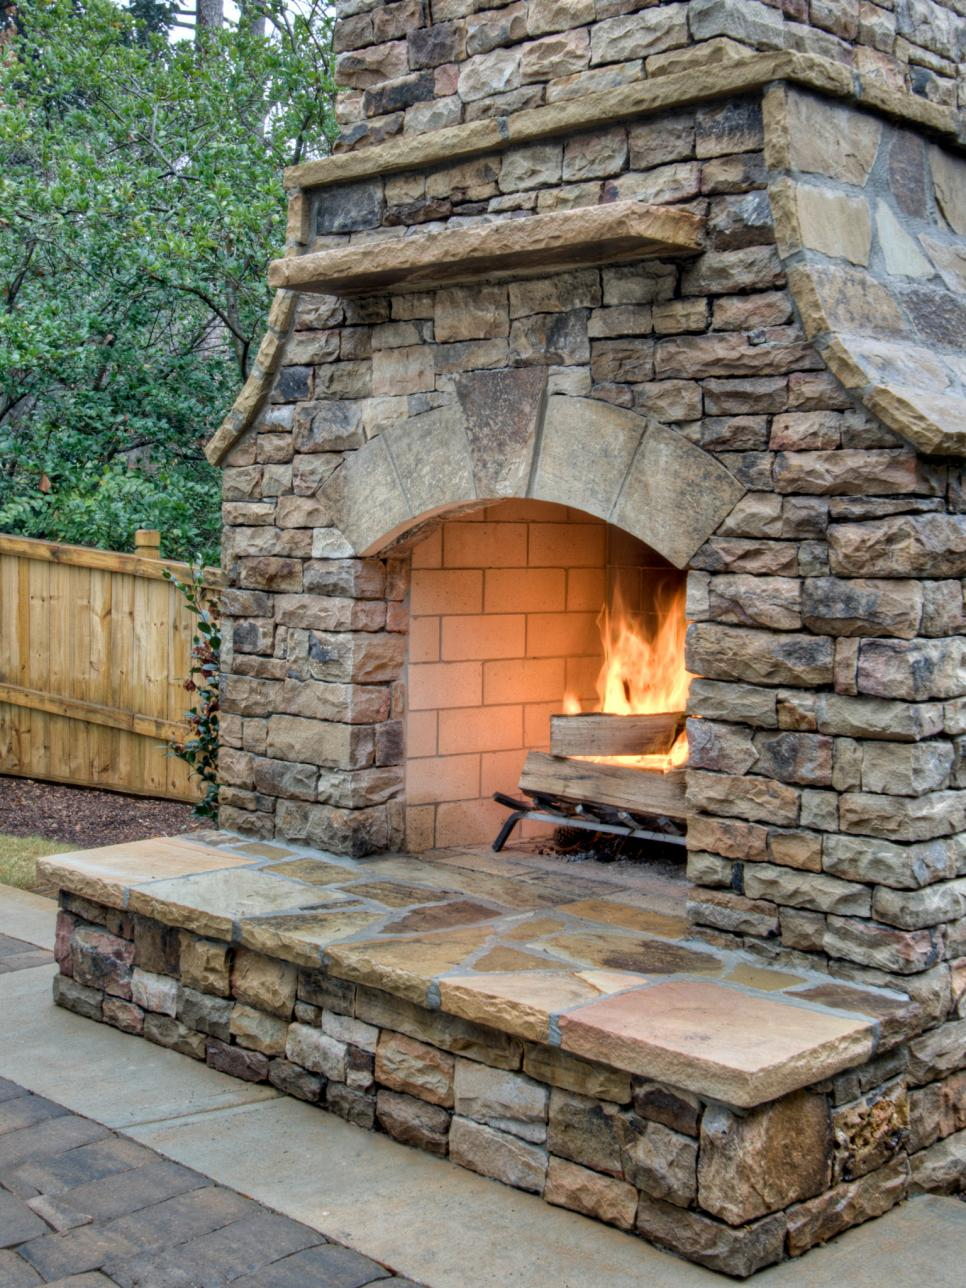 Outdoor Fireplace Ideas - Design Ideas for Outdoor Fireplaces | HGTV